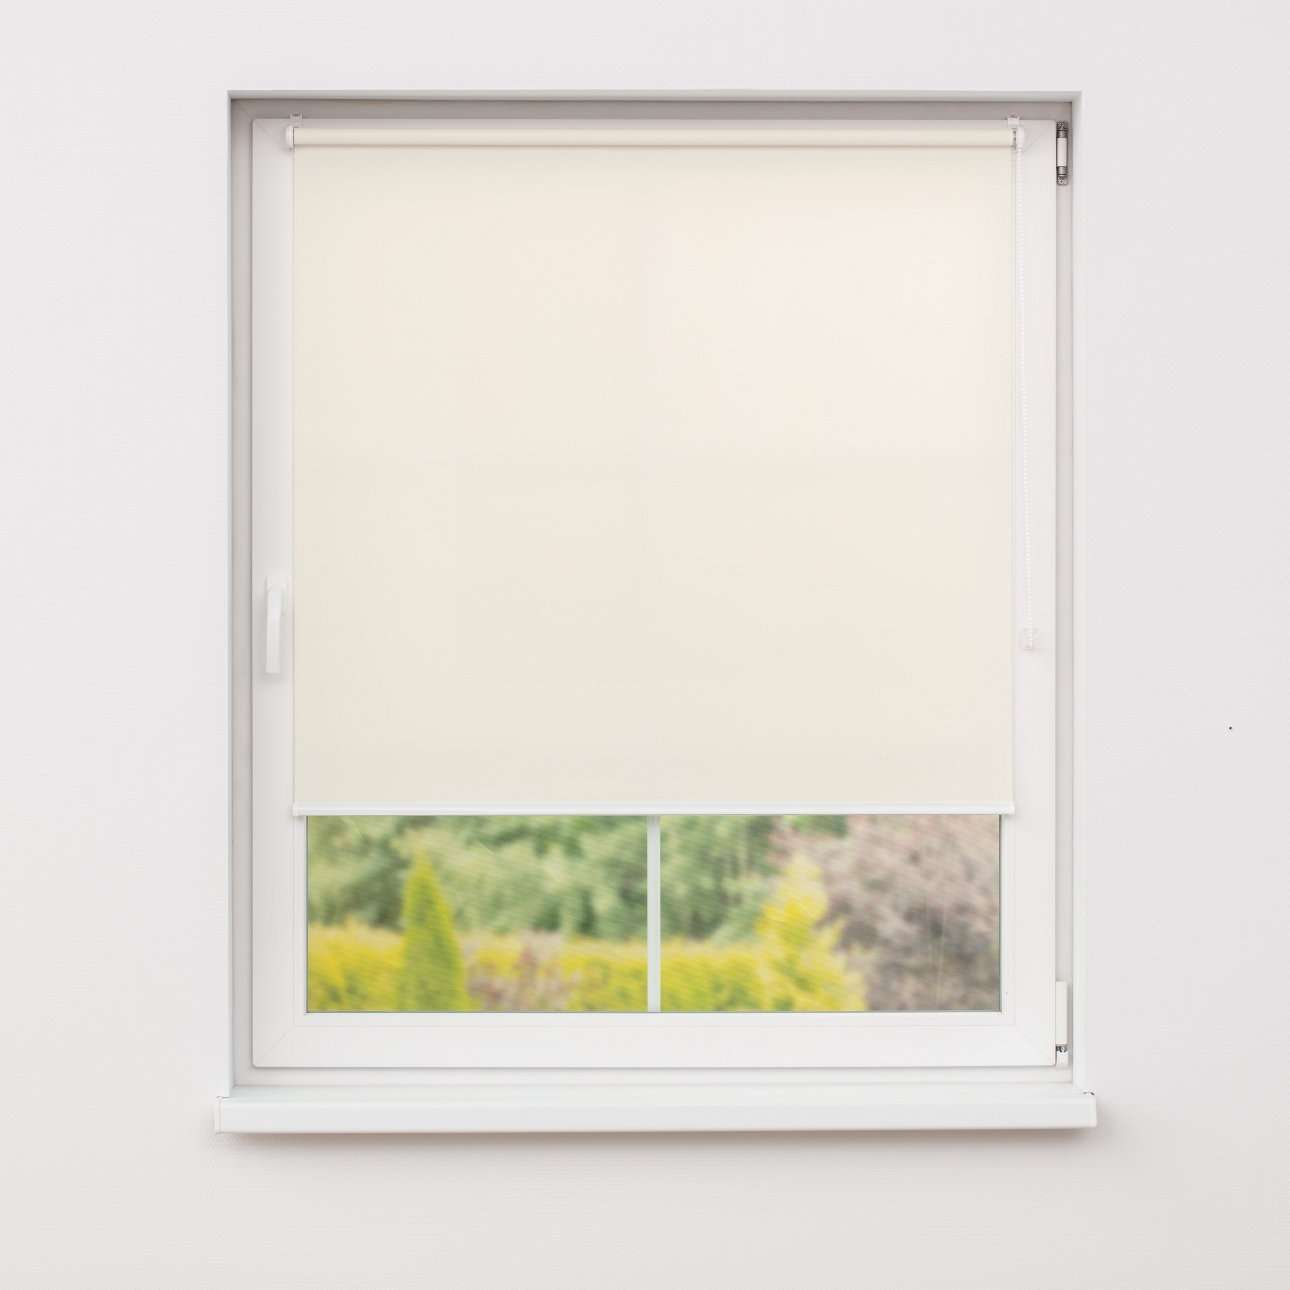 Mini roller blind (compact design for fitting inside window recess) in collection Roller blind transparent, fabric: 4905